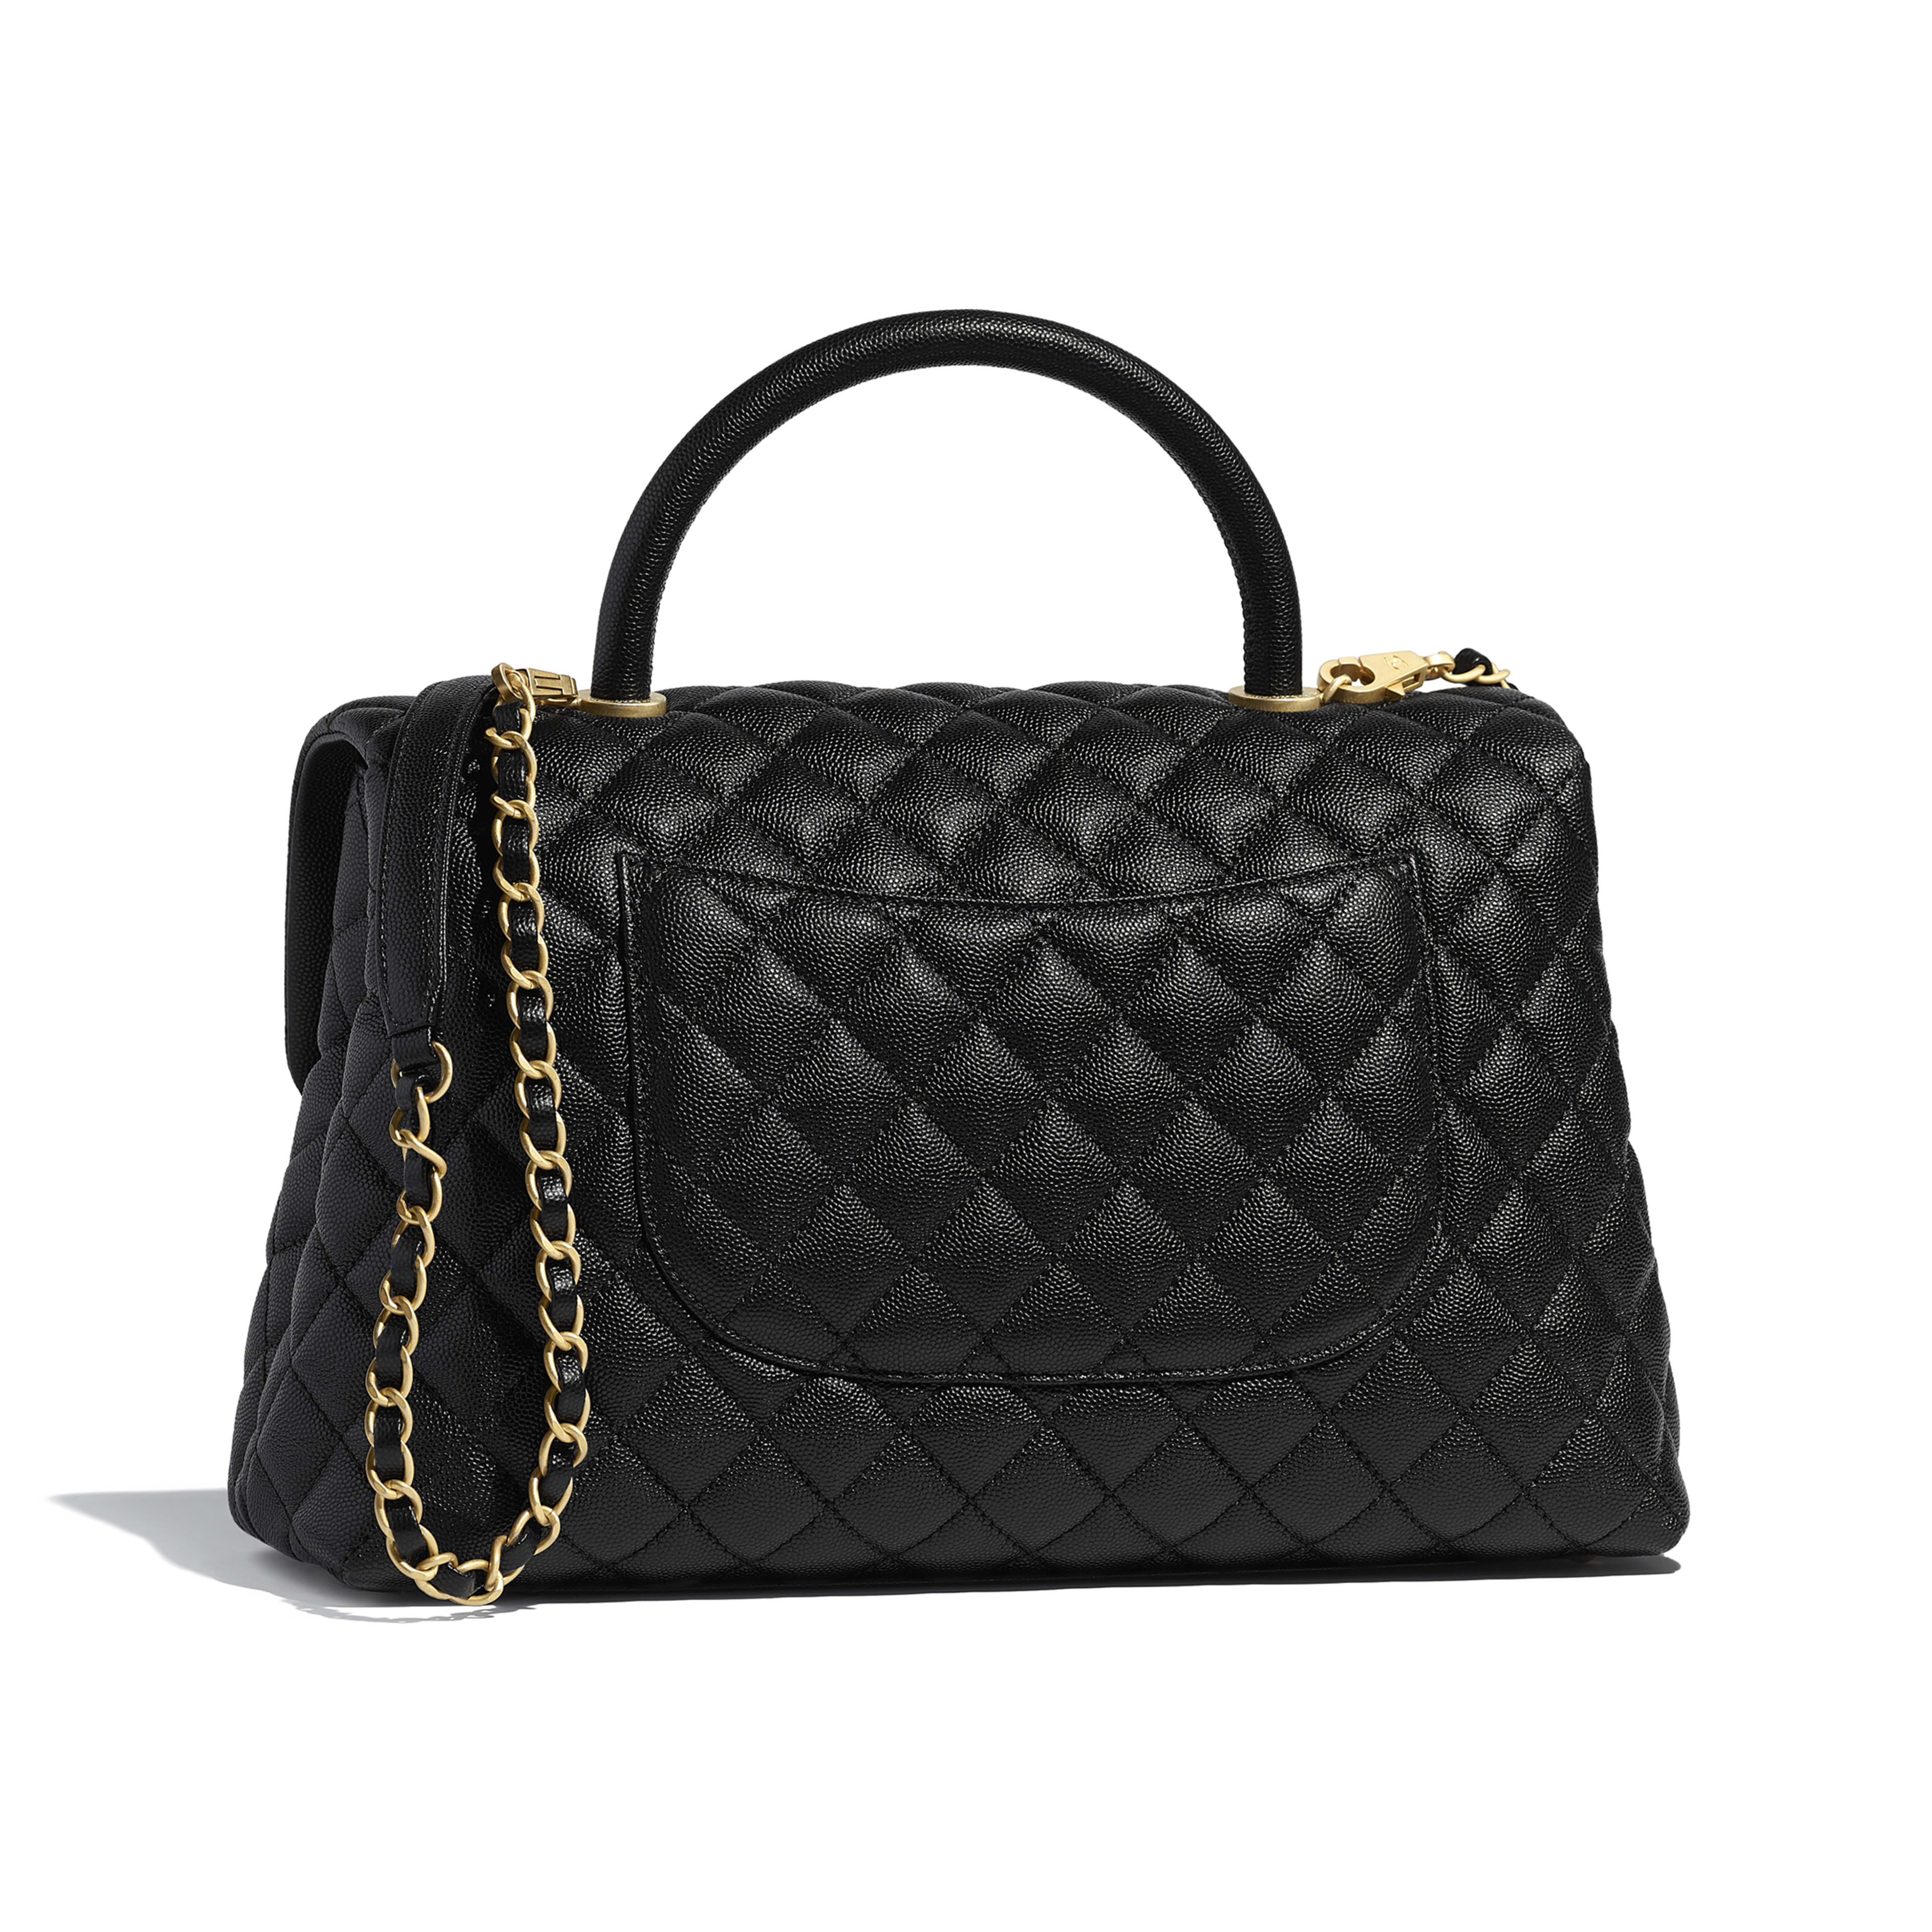 Large Flap Bag with Top Handle - Black - Grained Calfskin & Gold-Tone Metal - Alternative view - see full sized version